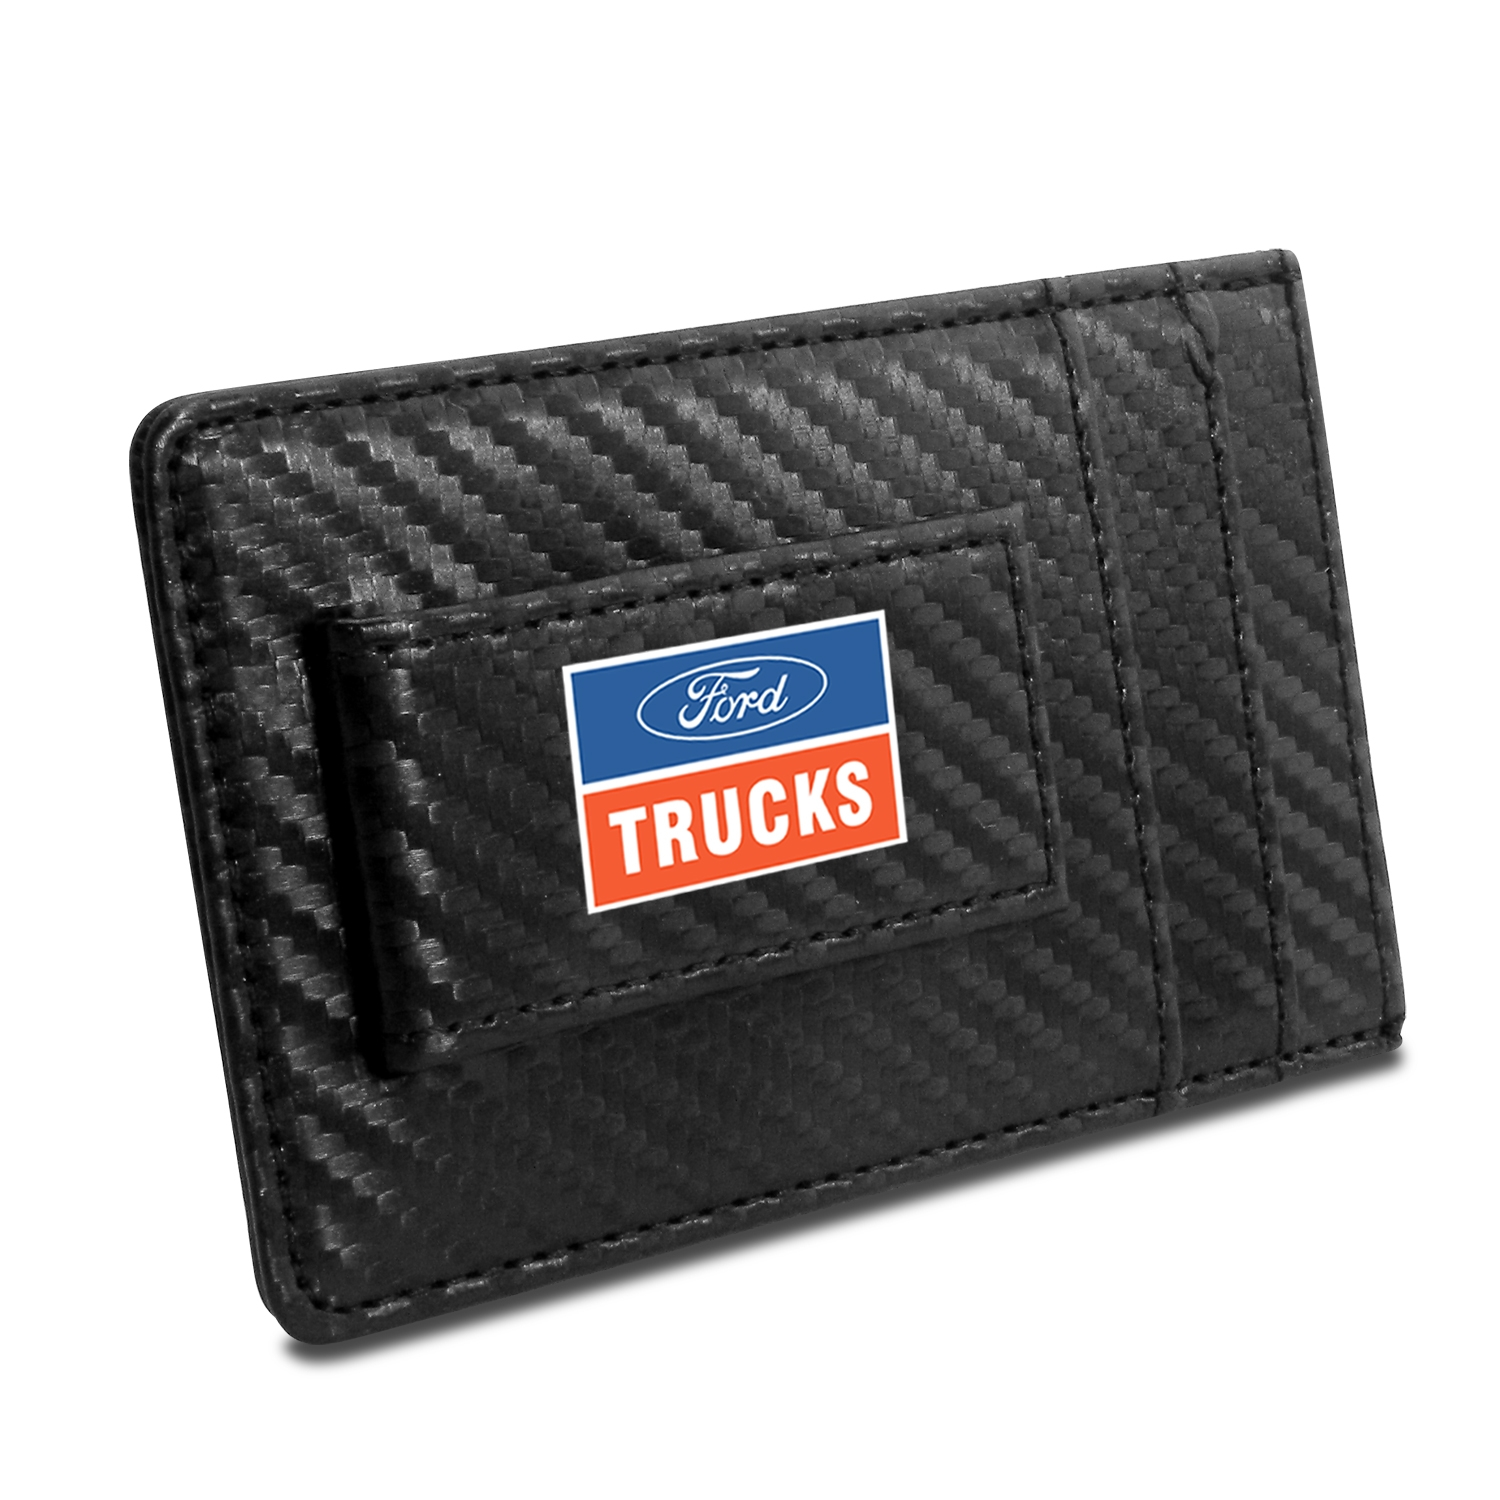 Ford Trucks Black Carbon Fiber RFID Card Holder Wallet